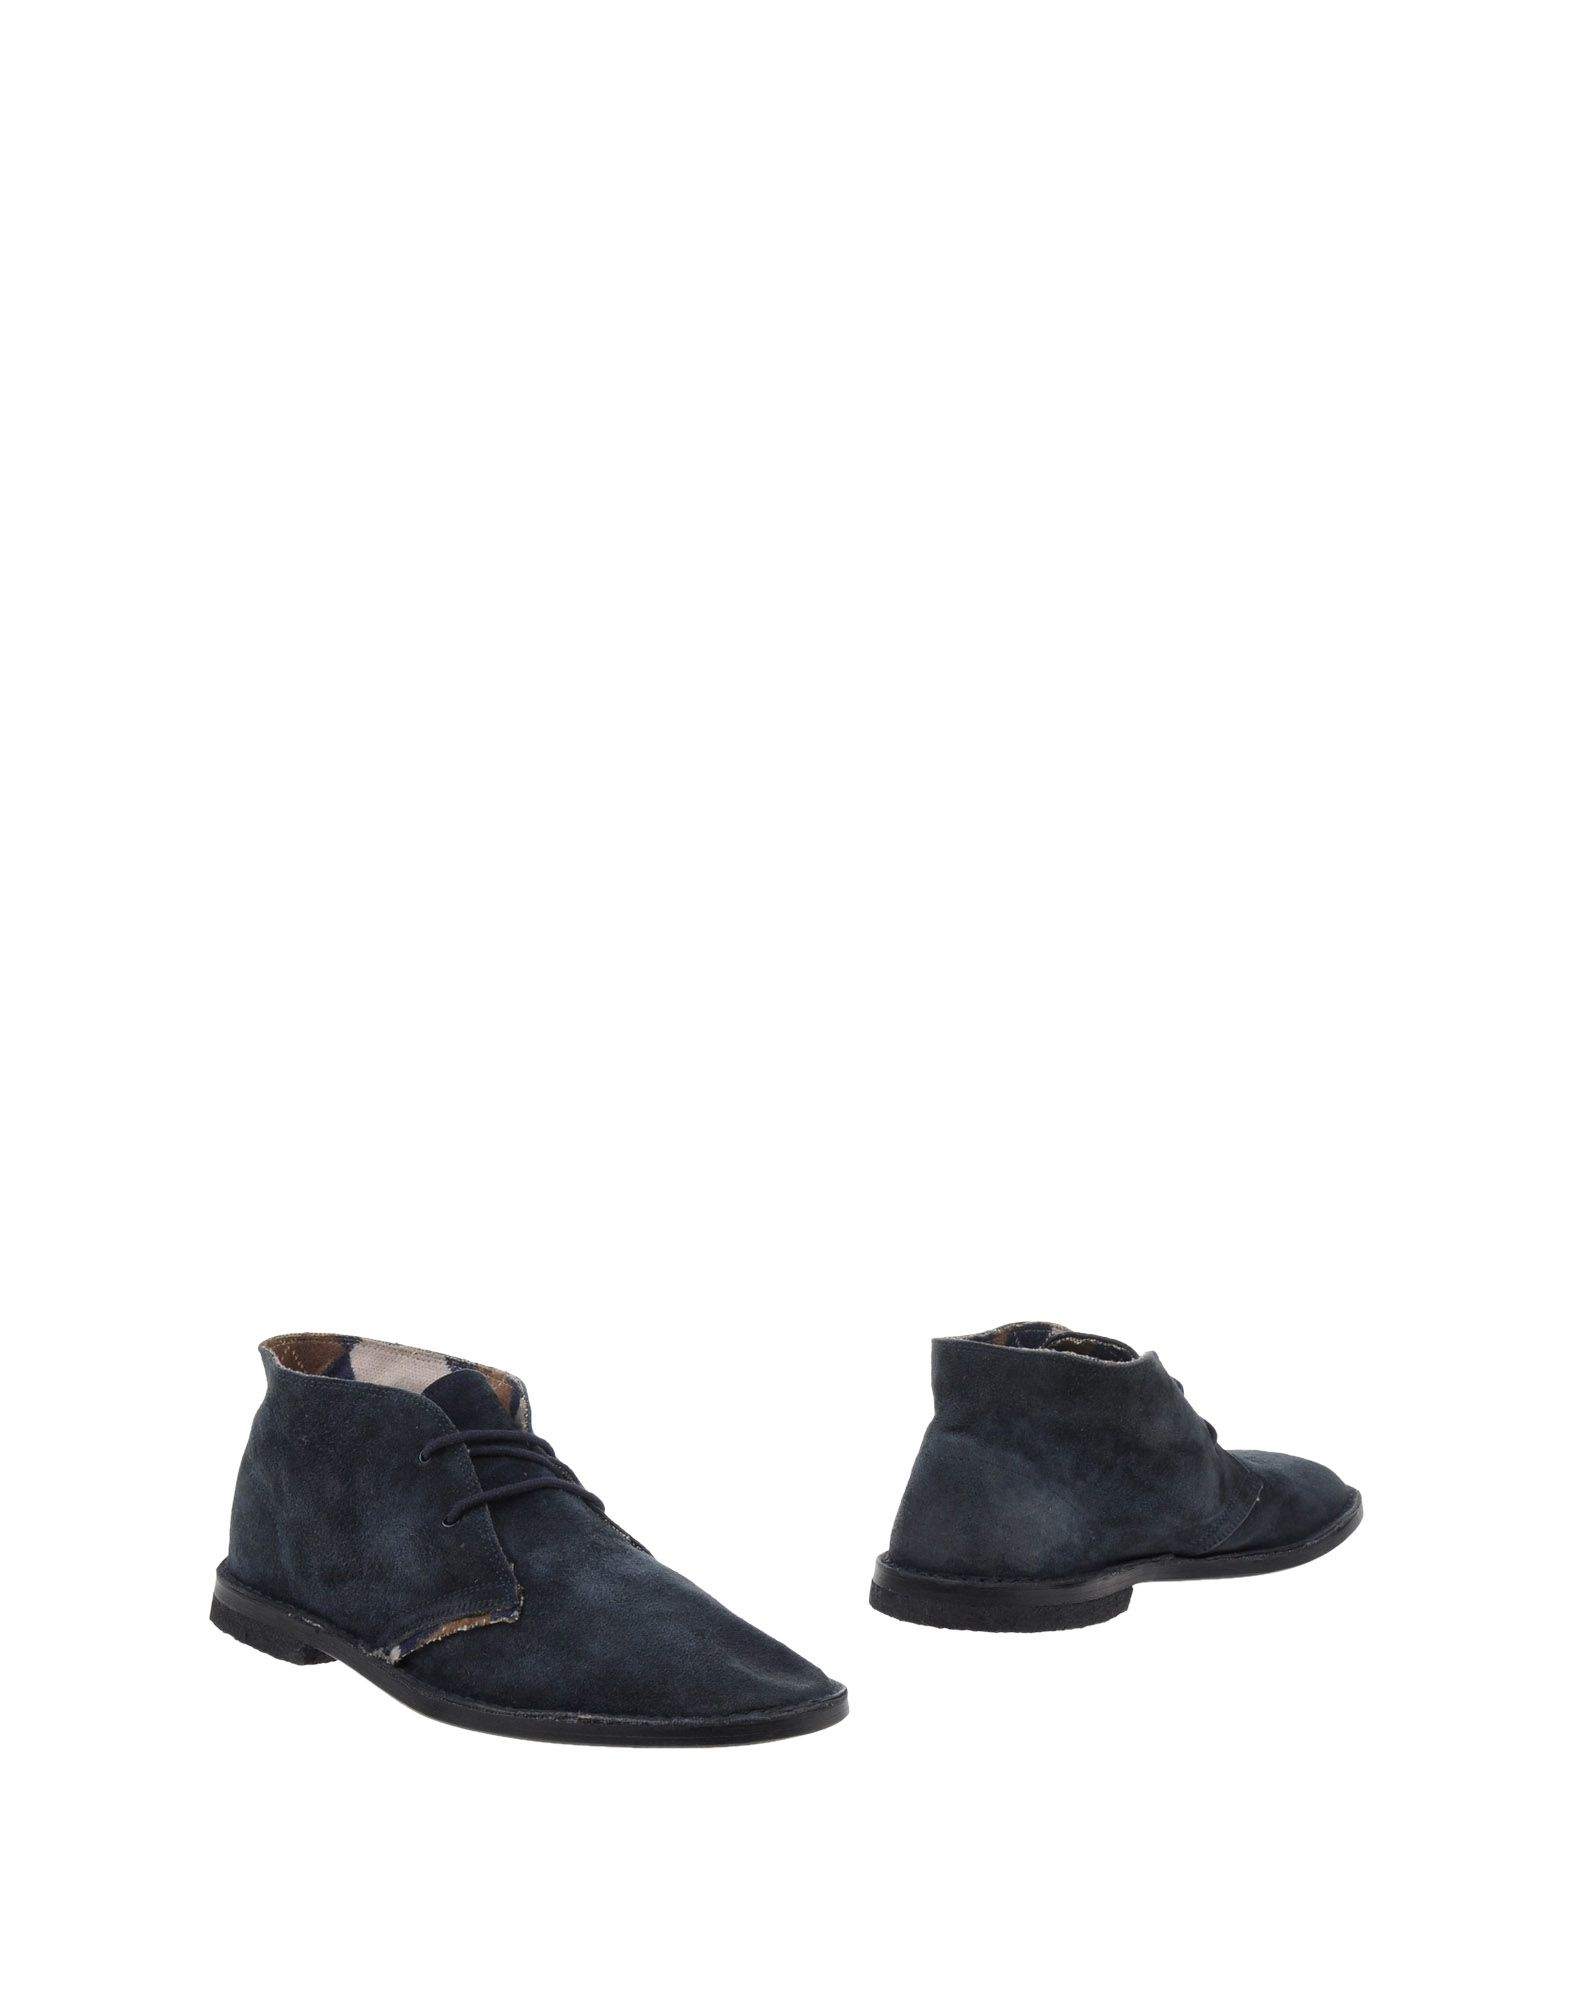 LE CROWN Boots in Dark Blue